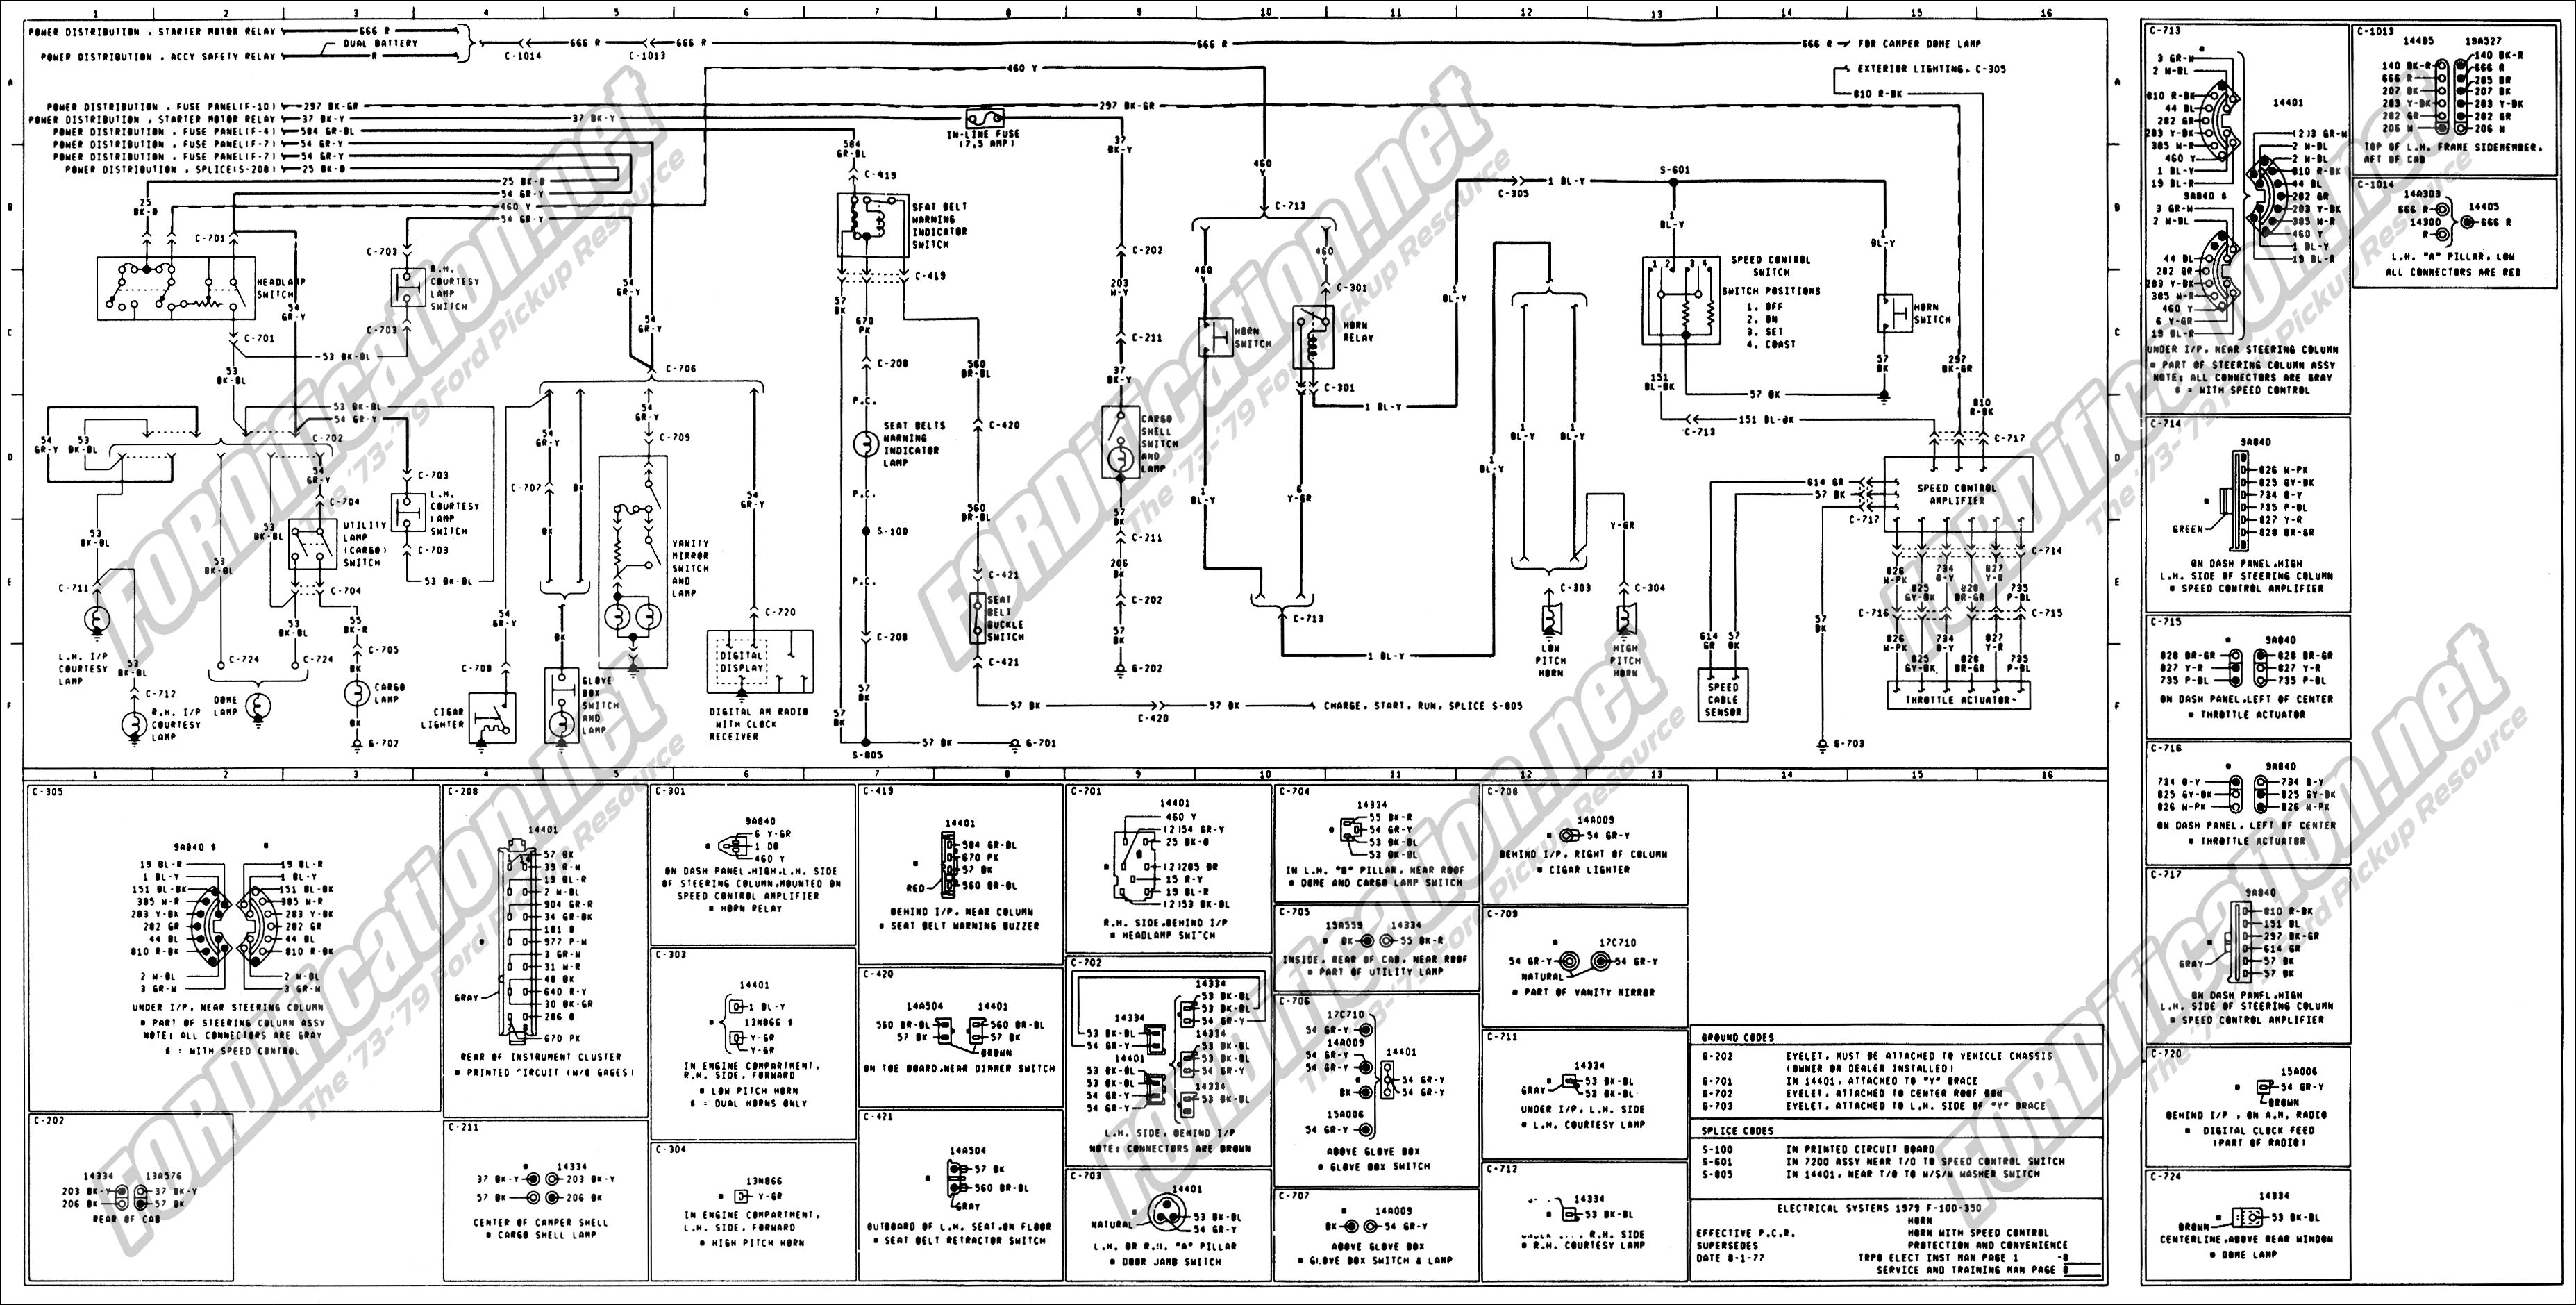 Windshield Wiper Diagram 1981 additionally  besides 1965 Chevy Truck Steering Column Wiring Schematic together with Spdt Micro Switch Wiring Diagram Amico likewise H3 Engine Diagram. on toyota pickup wiring harness replacement